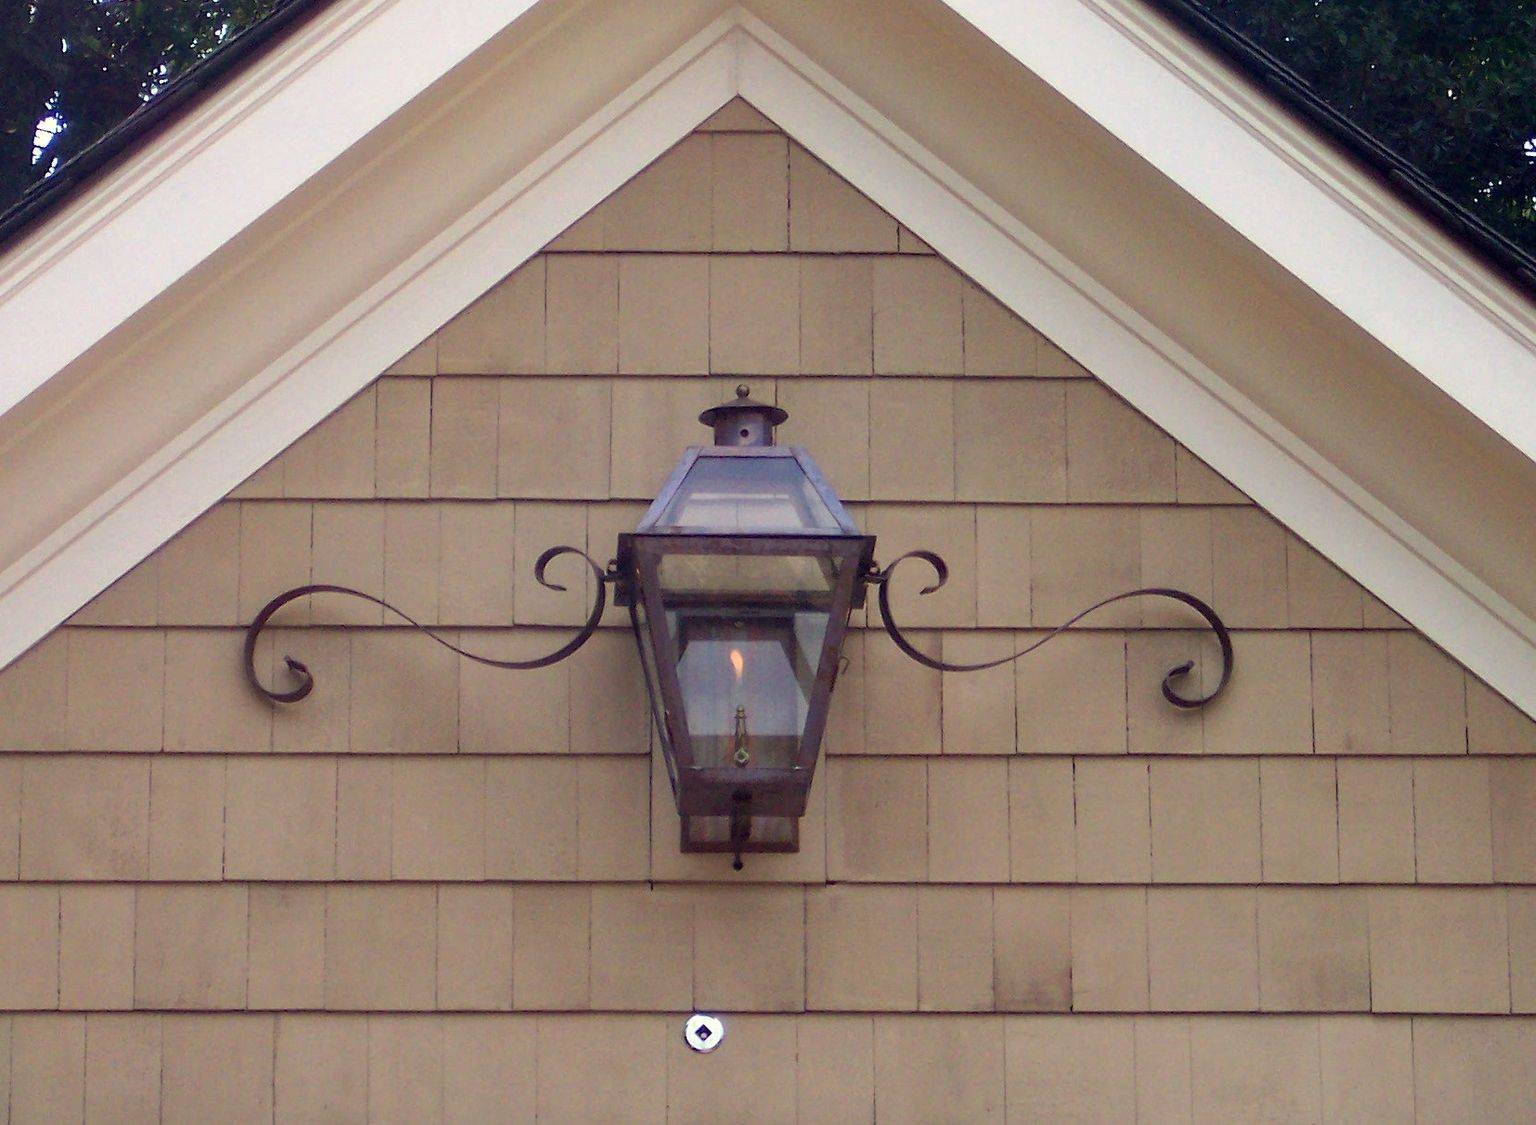 The Charleston Lantern Gas Or Electric The Charleston Collection Lanterns Outdoor Wall Mounted Lighting Wall Lantern Exterior Wall Light